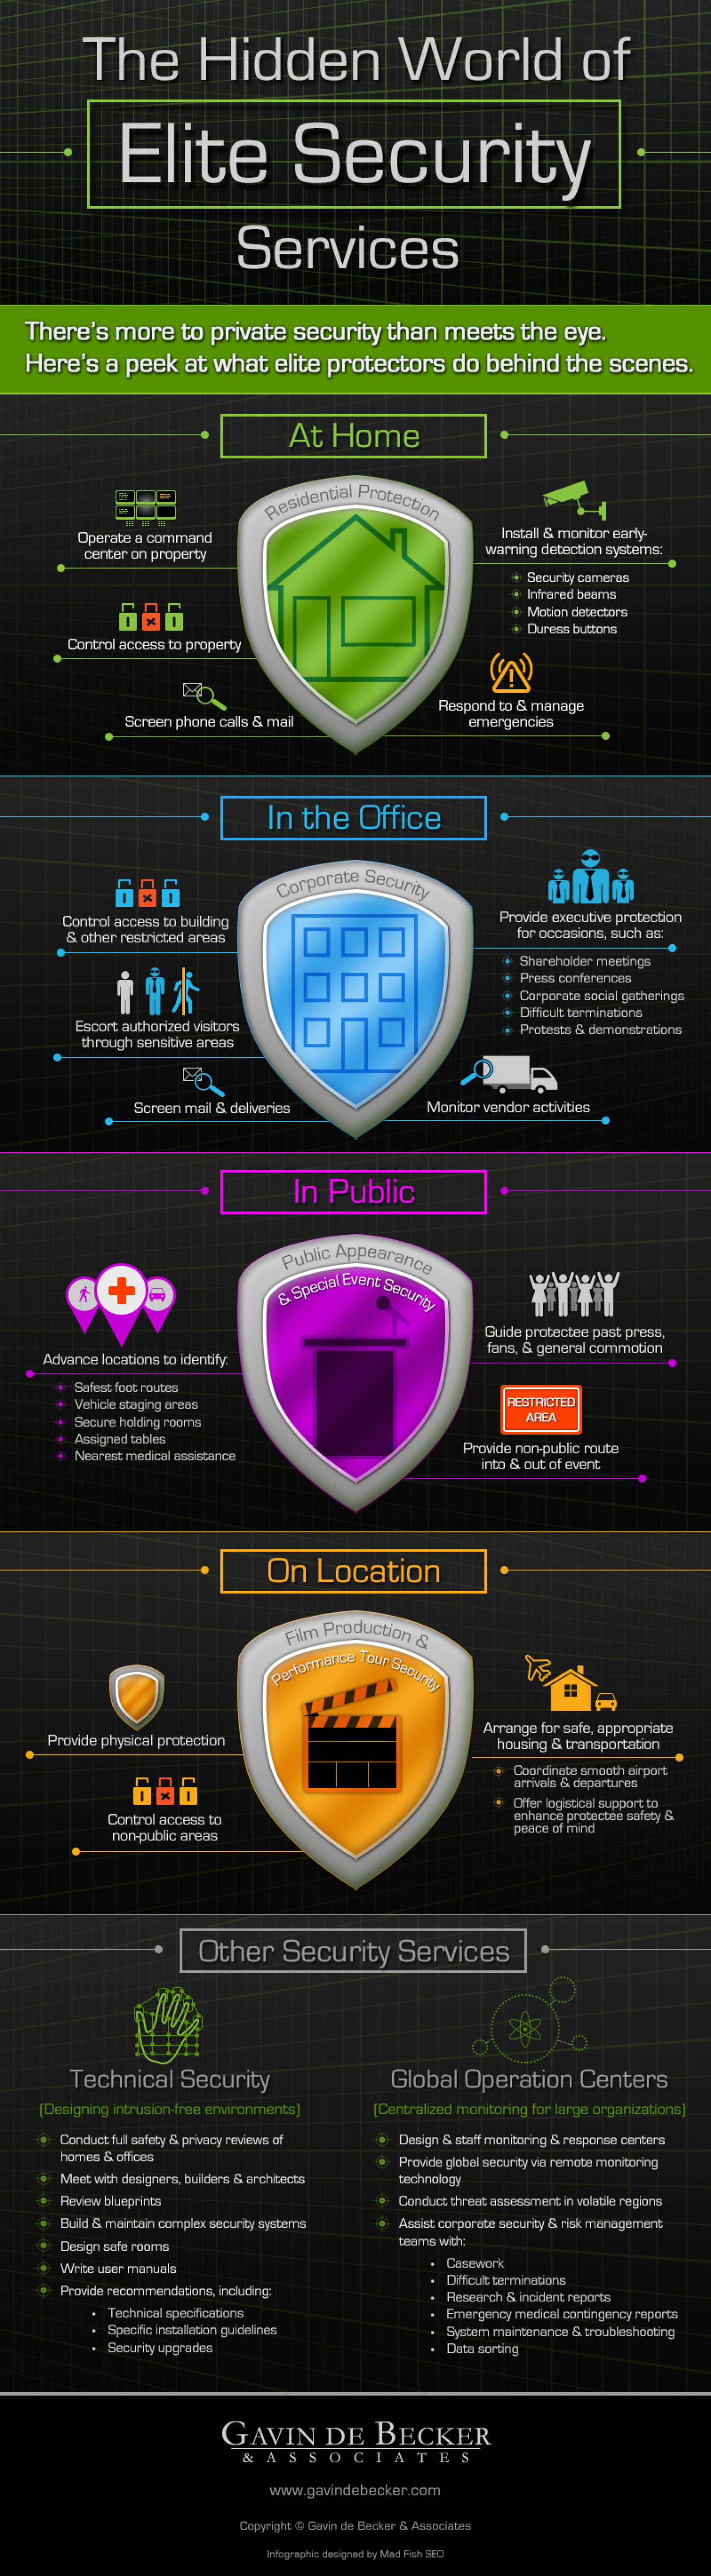 The Hidden World of Elite Security Services Infographic